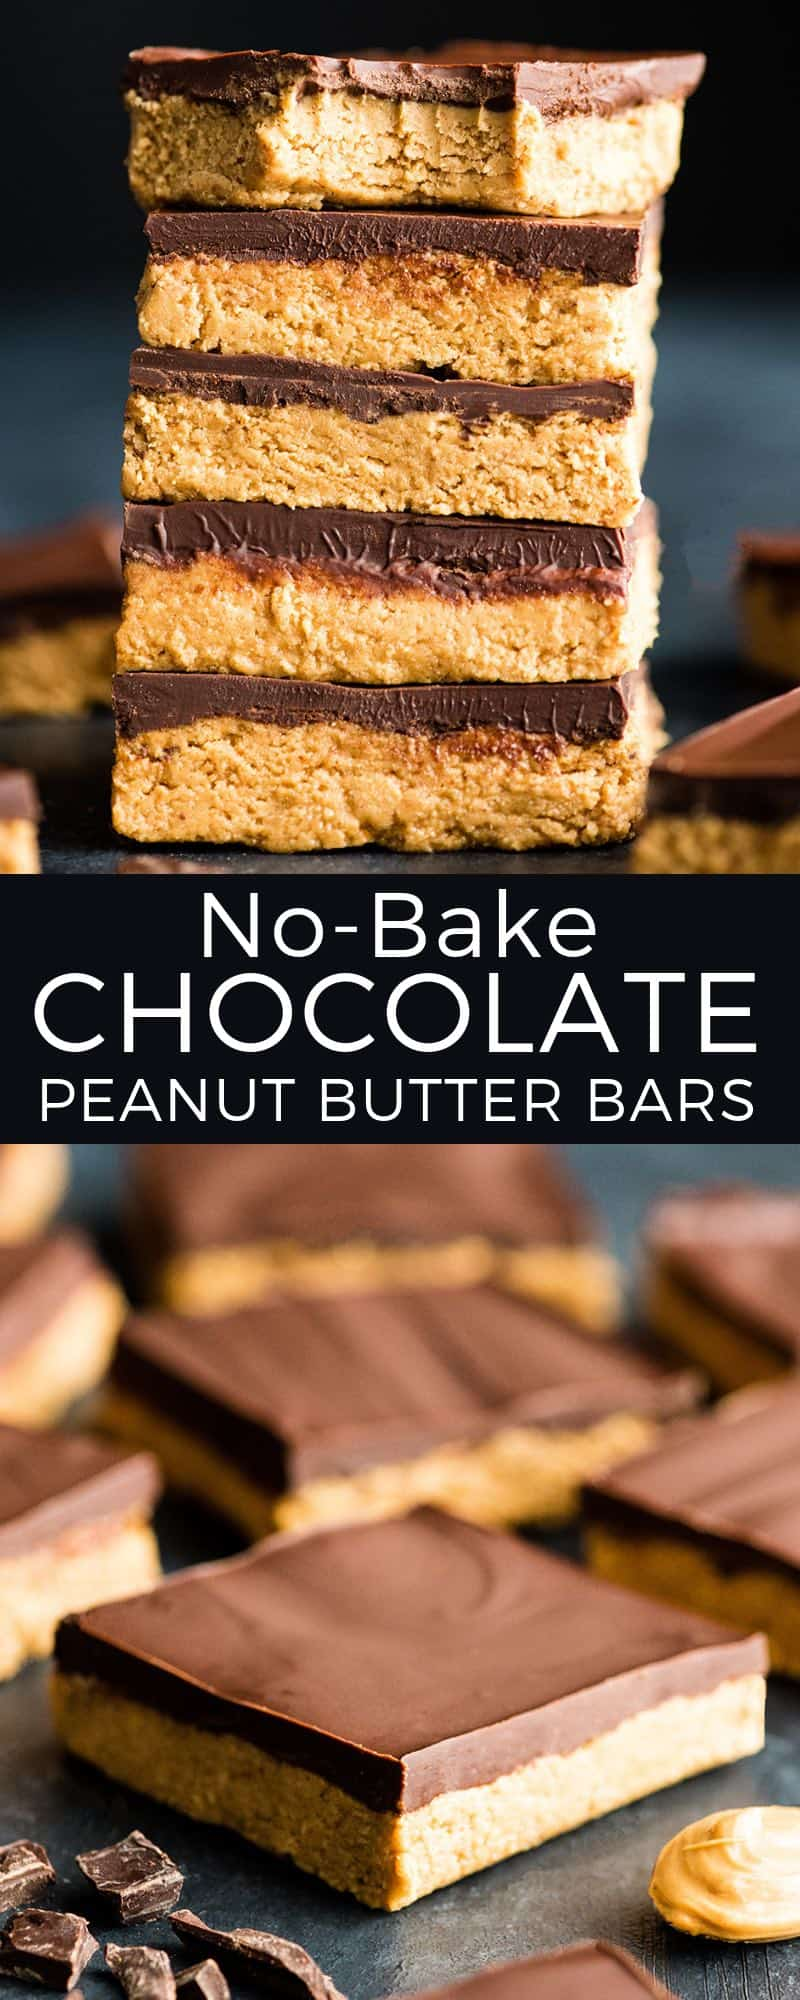 No-Bake Chocolate Peanut Butter Bars are SO easy to make! This recipe is made with 7 ingredients and is ready in 15 minutes! , Plus they can be made vegan (dairy-free) or gluten-free!  #peanutbuttercup #nobakepeanutbutterbars #nobake #peanutbutter #cookies #bars #vegan #glutenfree